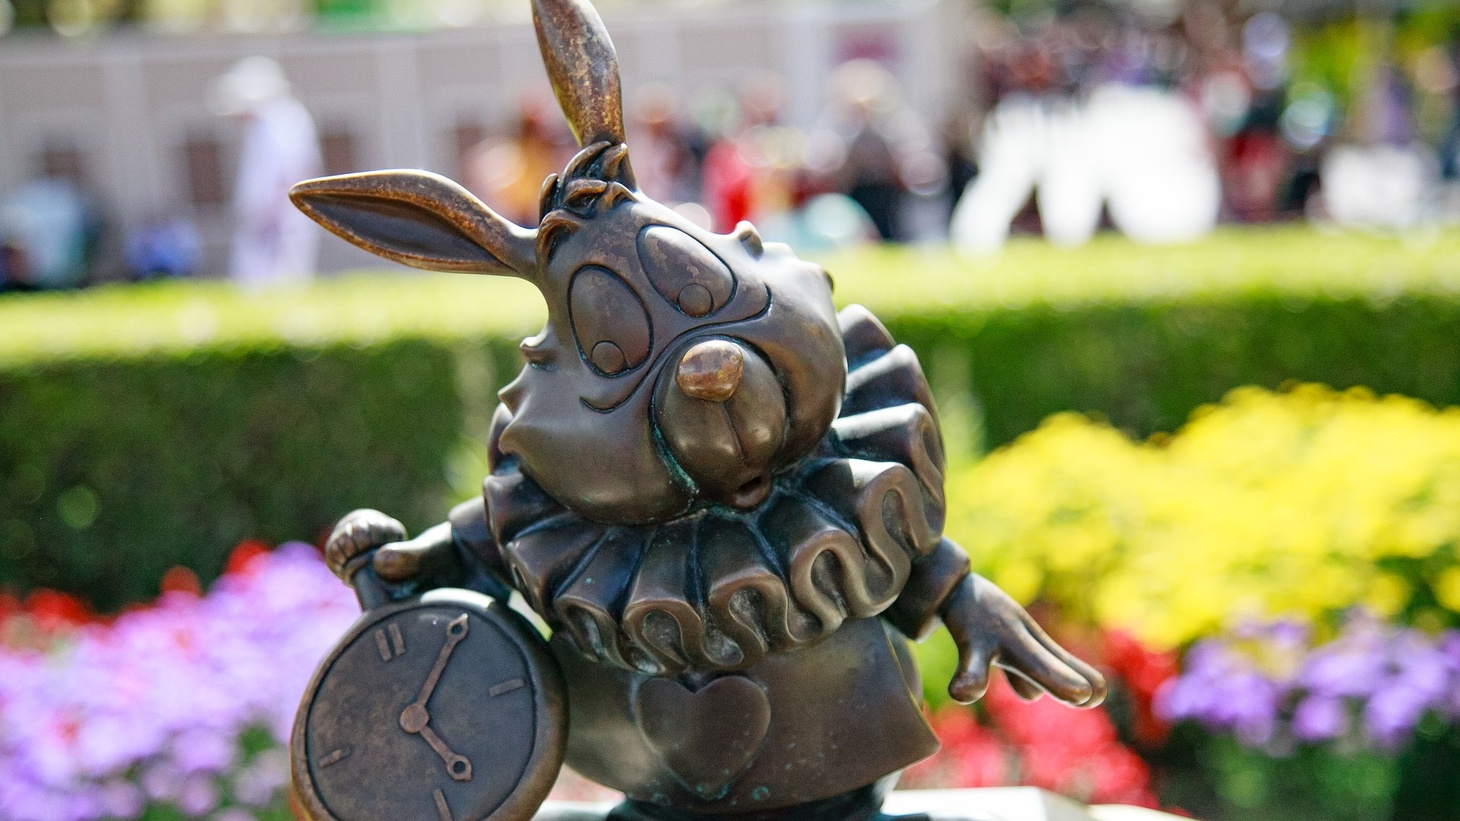 Disneyland will no longer reopen on July 17 as planned. In Florida, Disney World is still expected to reopen starting July 11.